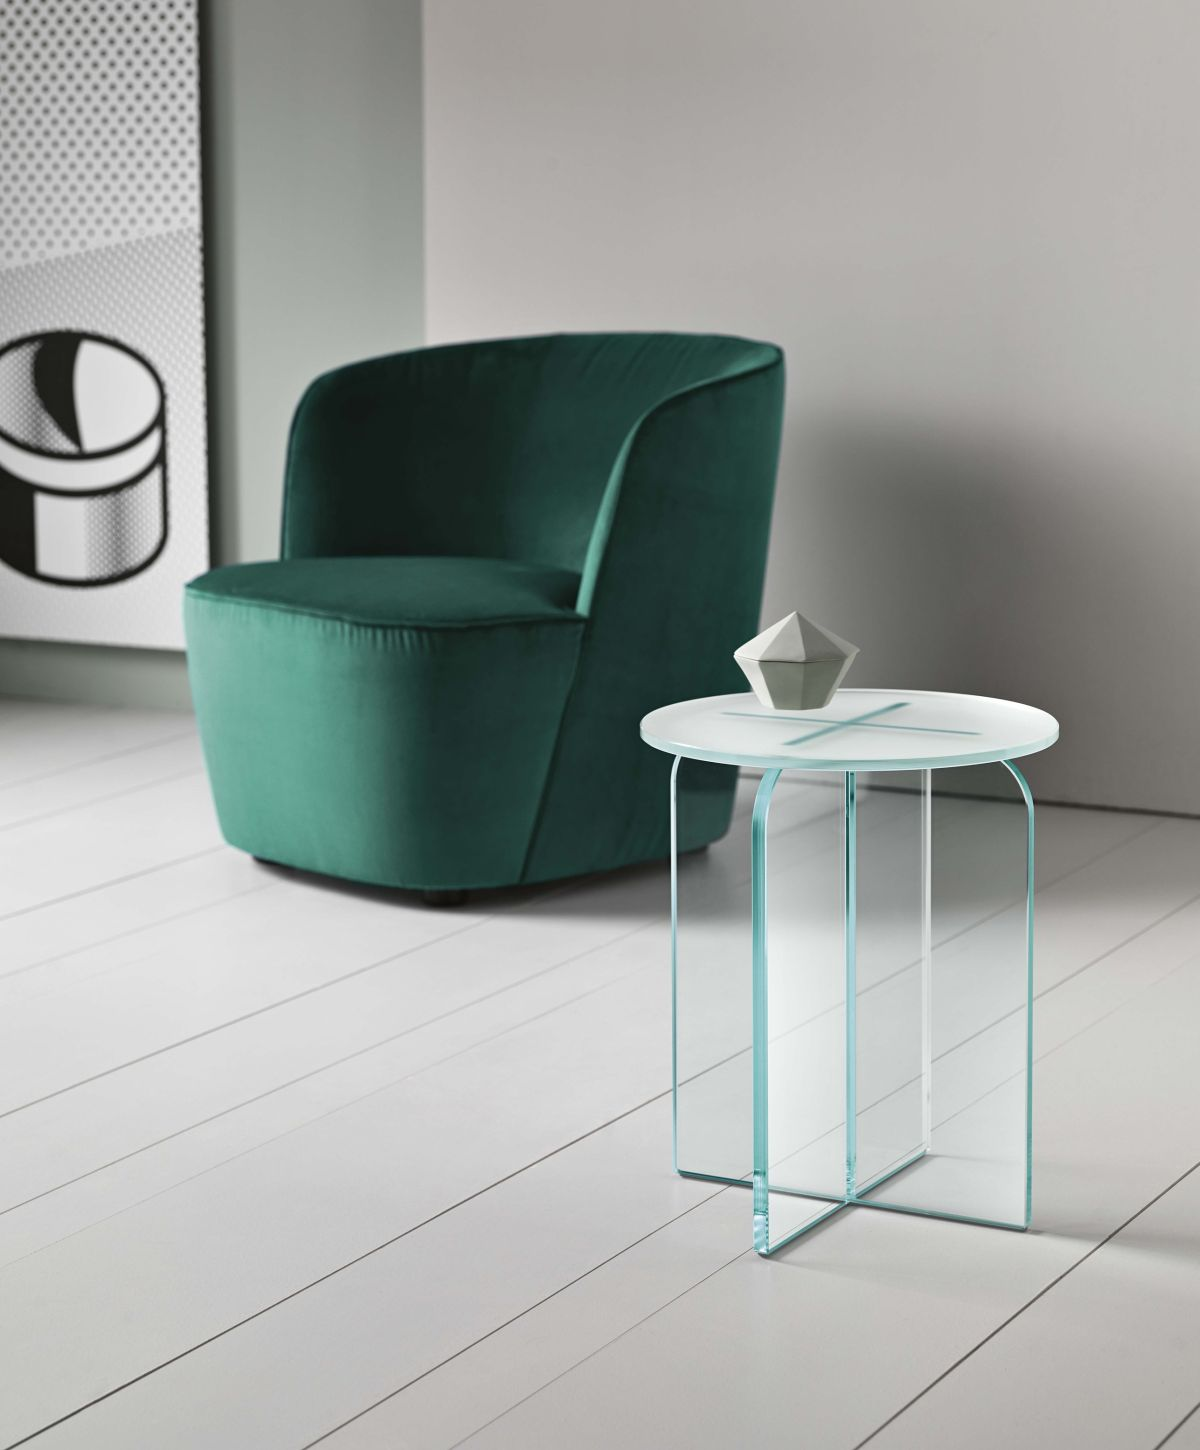 Whether you use it as a stool or as a small table, the Opalina has what it takes to stand out without being opulent